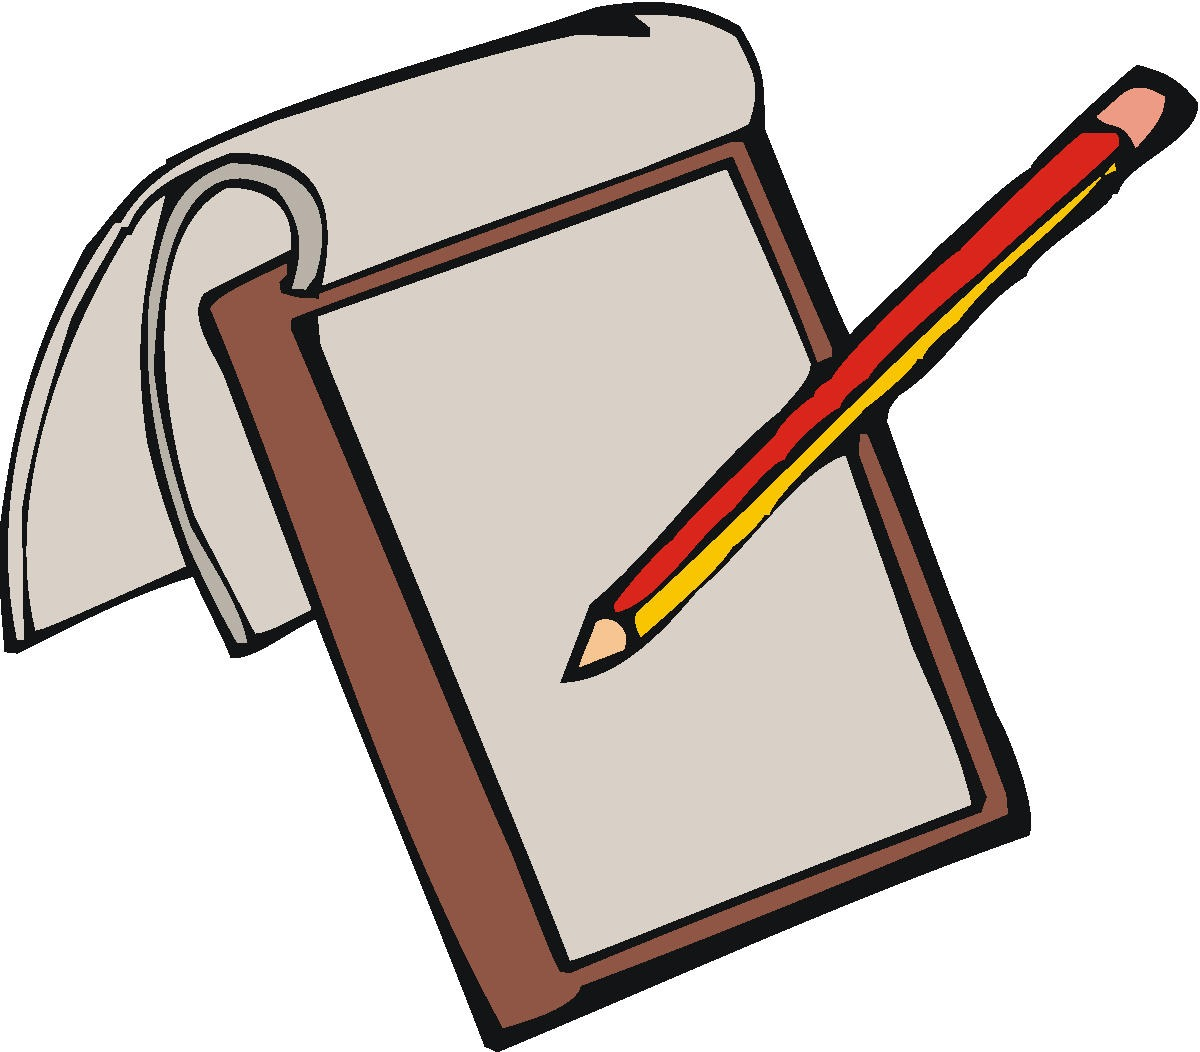 Book And Pen Clipart.